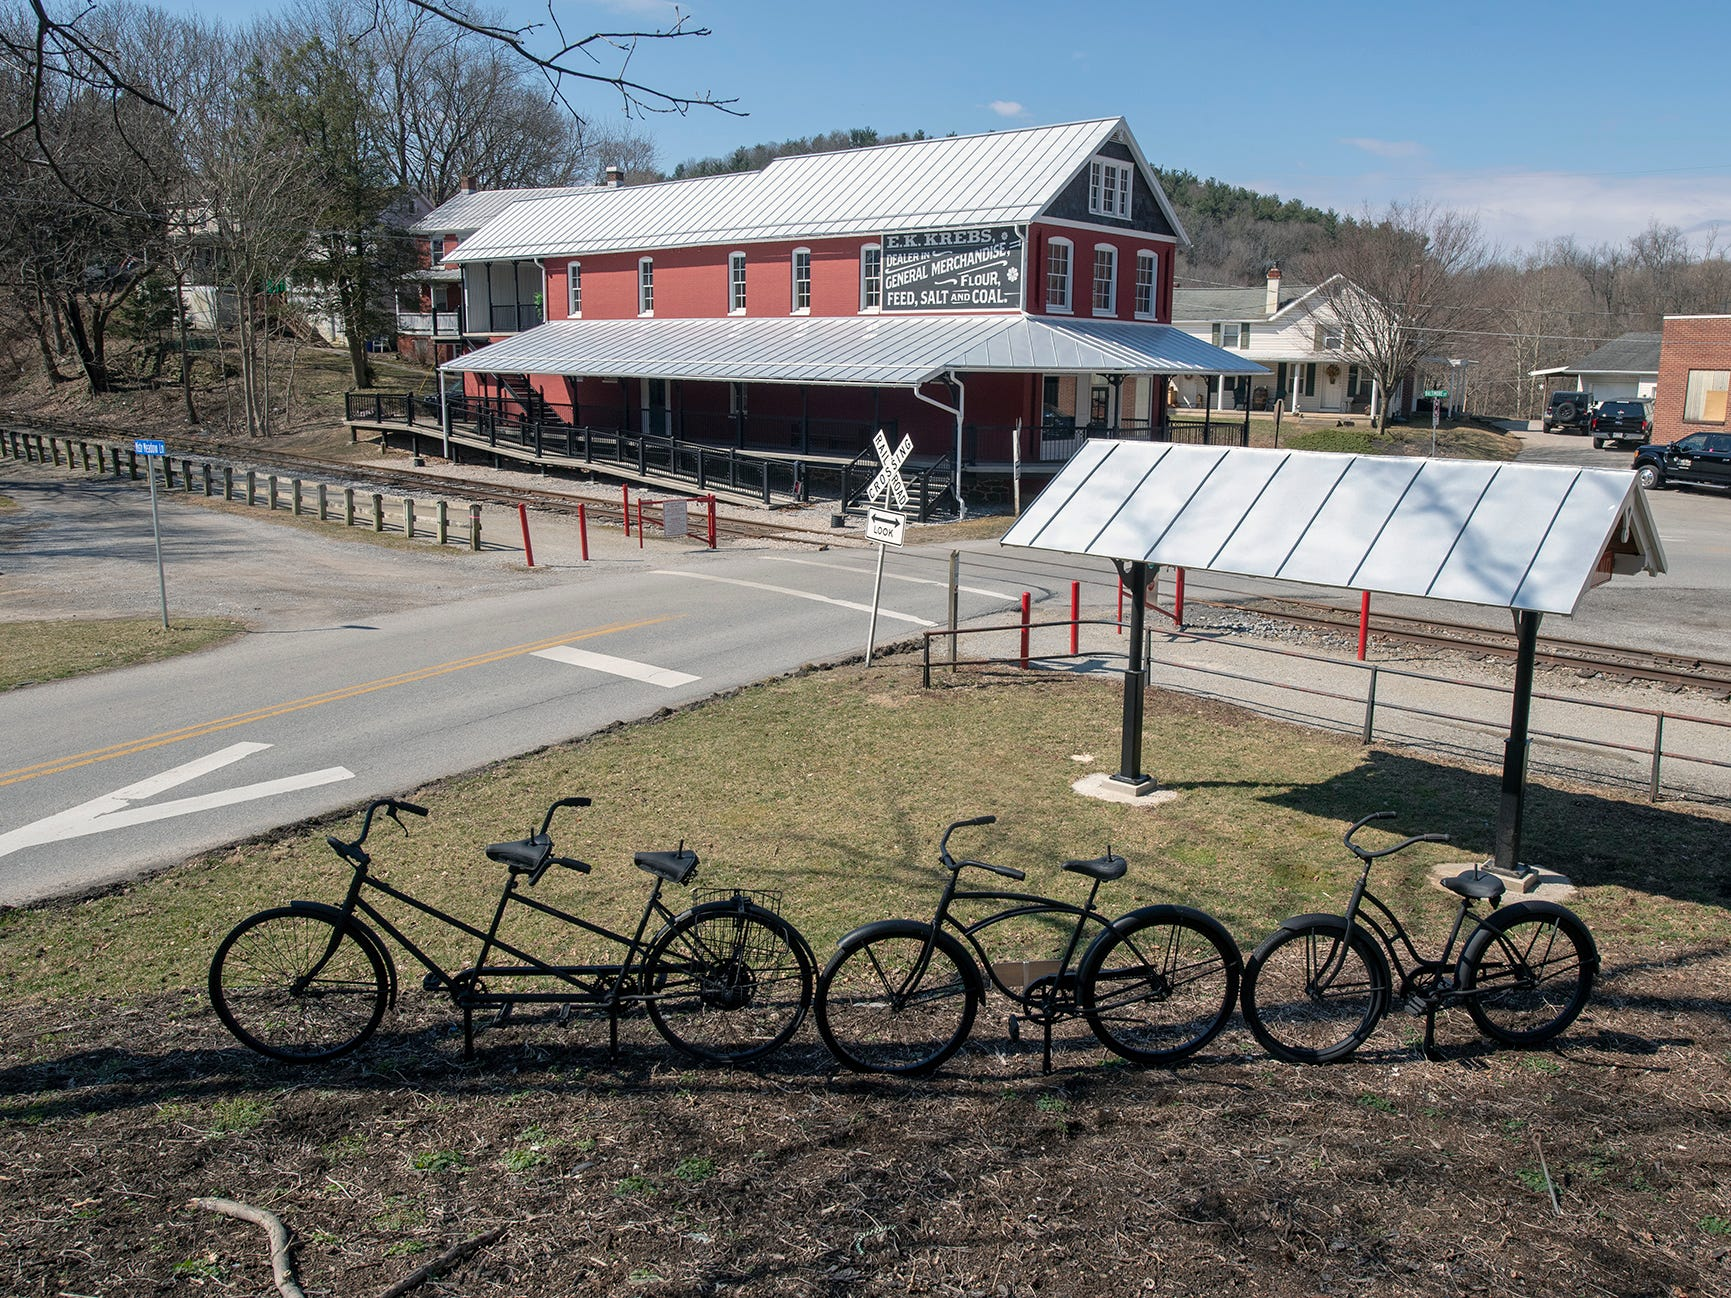 The area in the foreground was cleaned out and a bicycle sculpture added by David Keller and Ellen Darby. The couple also built a new Seitzland train station and they hope to lay a brick walking surface around it. The Seitzland store is in the background.